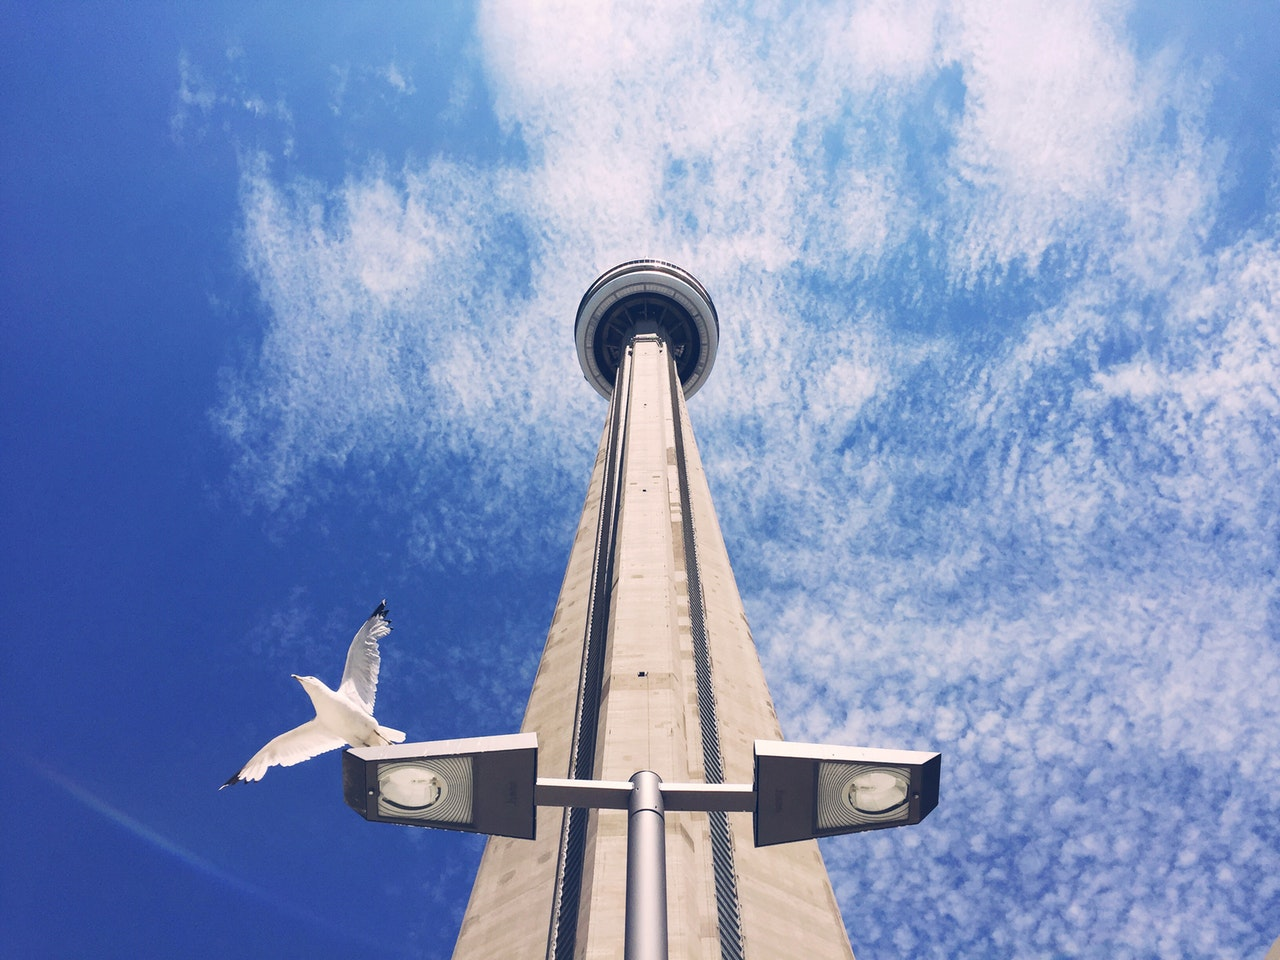 CN Tower and bird on lamp